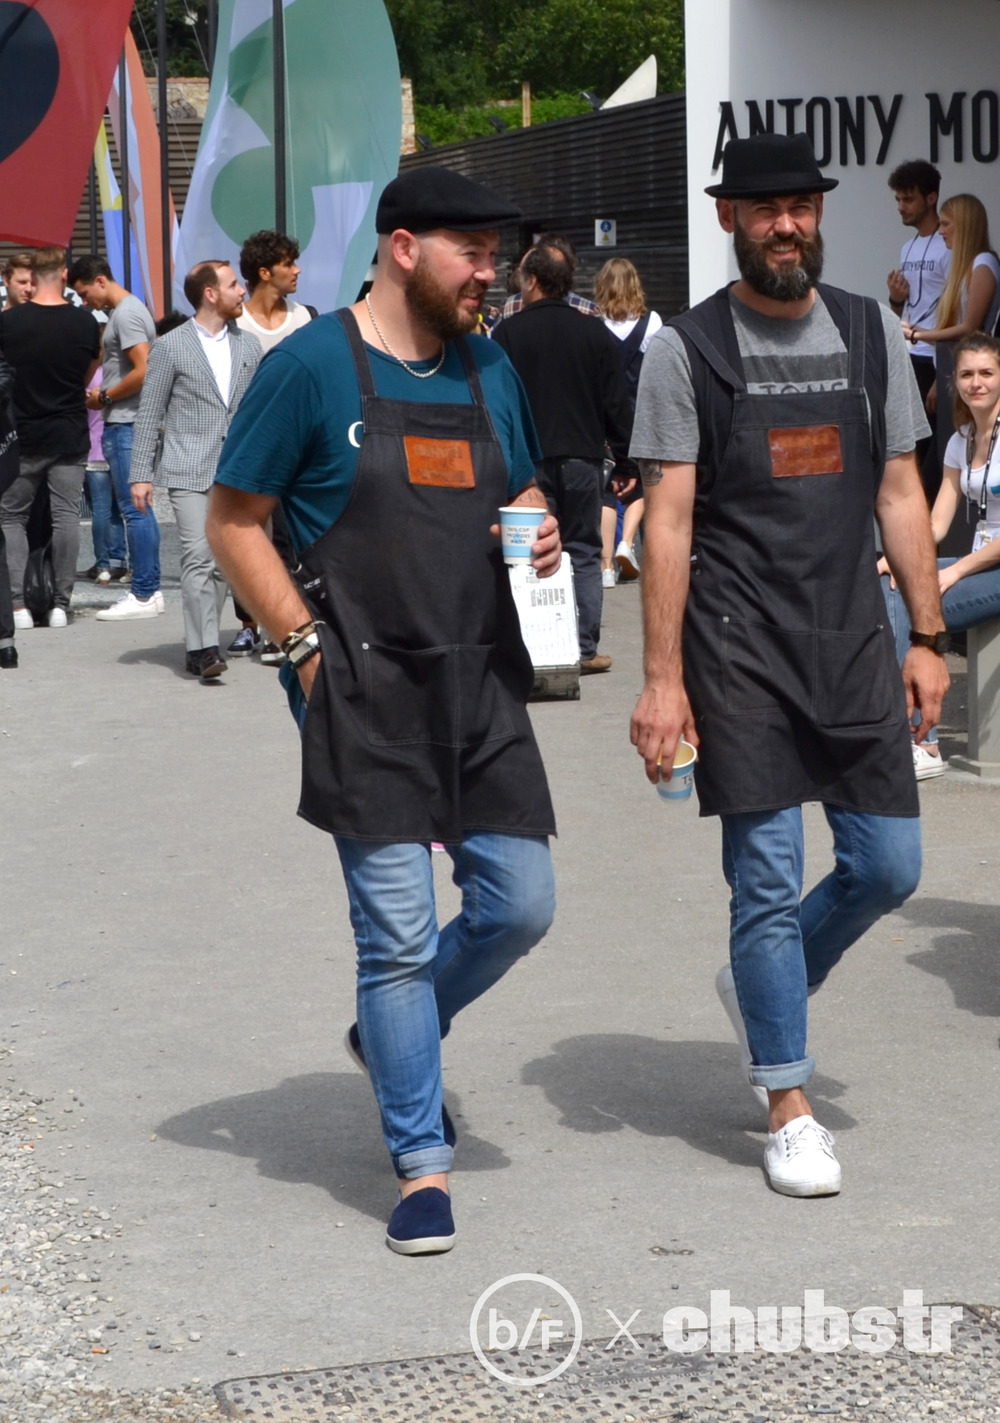 BF032_PittiUomo88_FB_11.jpg